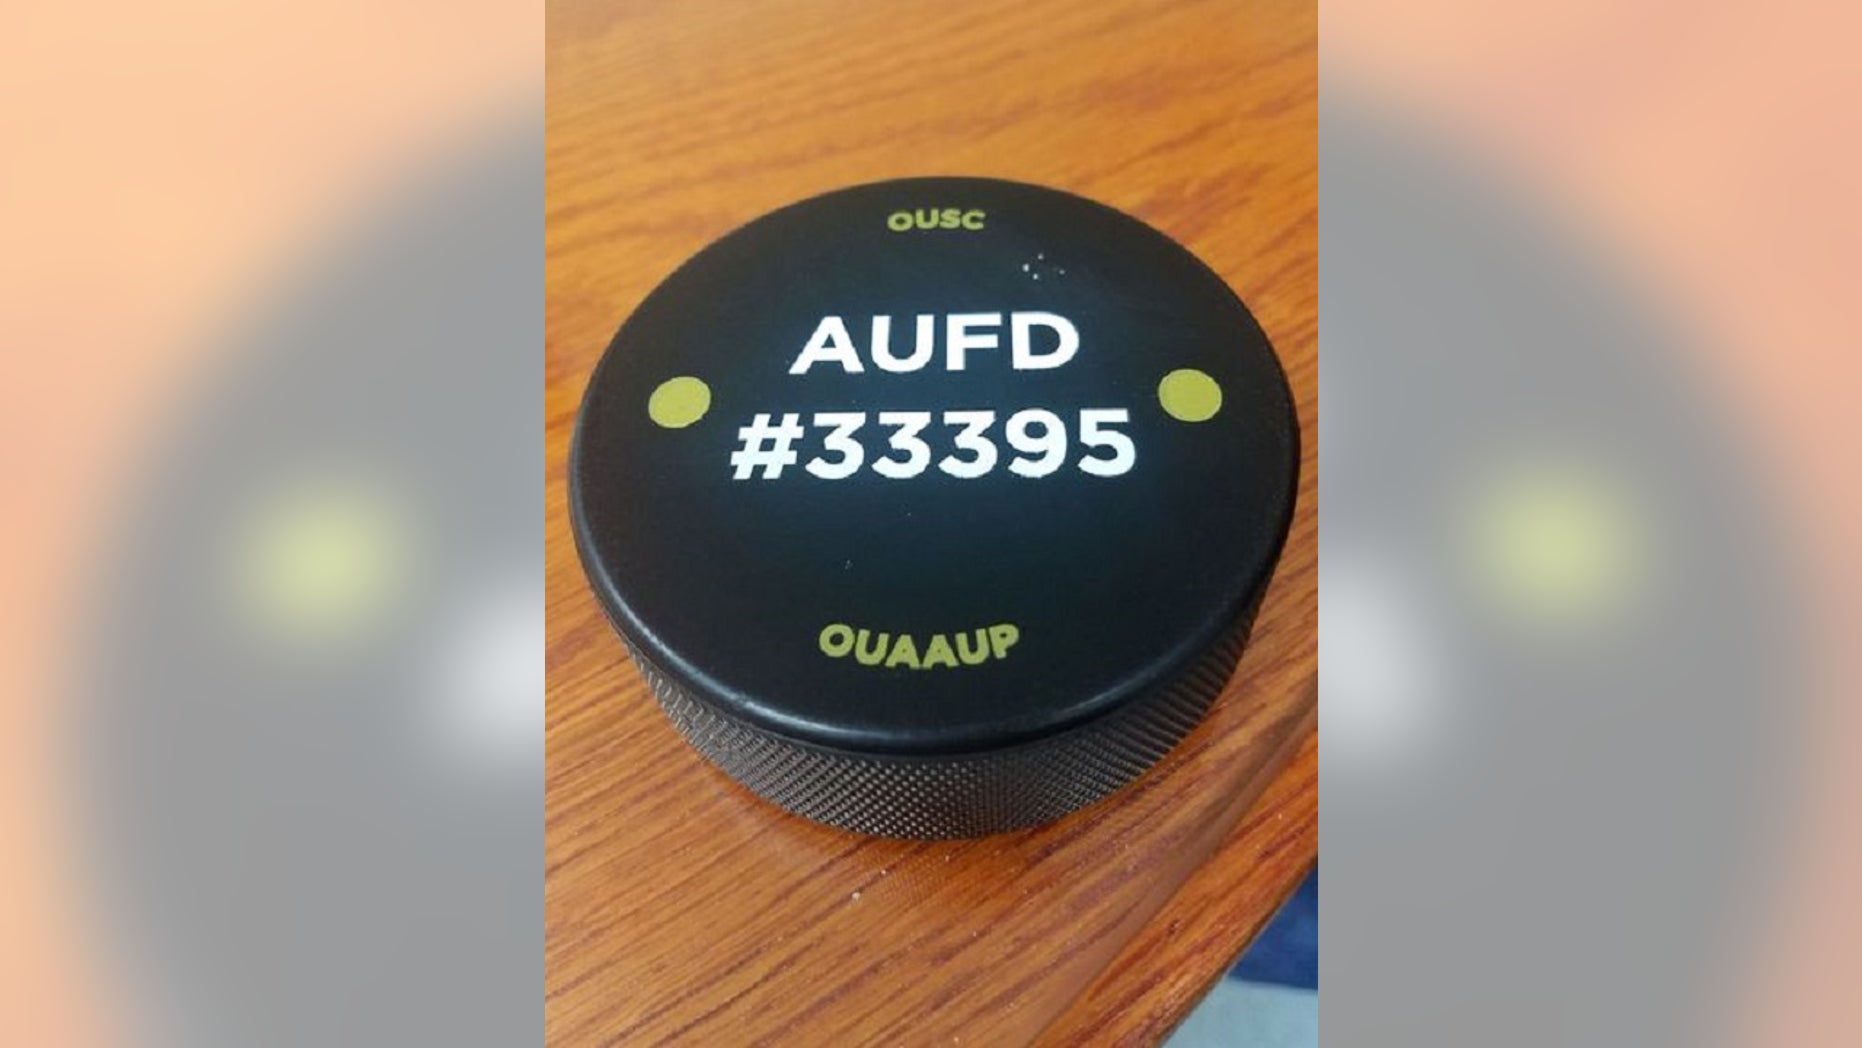 Hockey pucks are distributed at Oakland University in Michigan to protect students from active shooter situations, reports said Tuesday. AUFD refers to the All University Fund Drive.